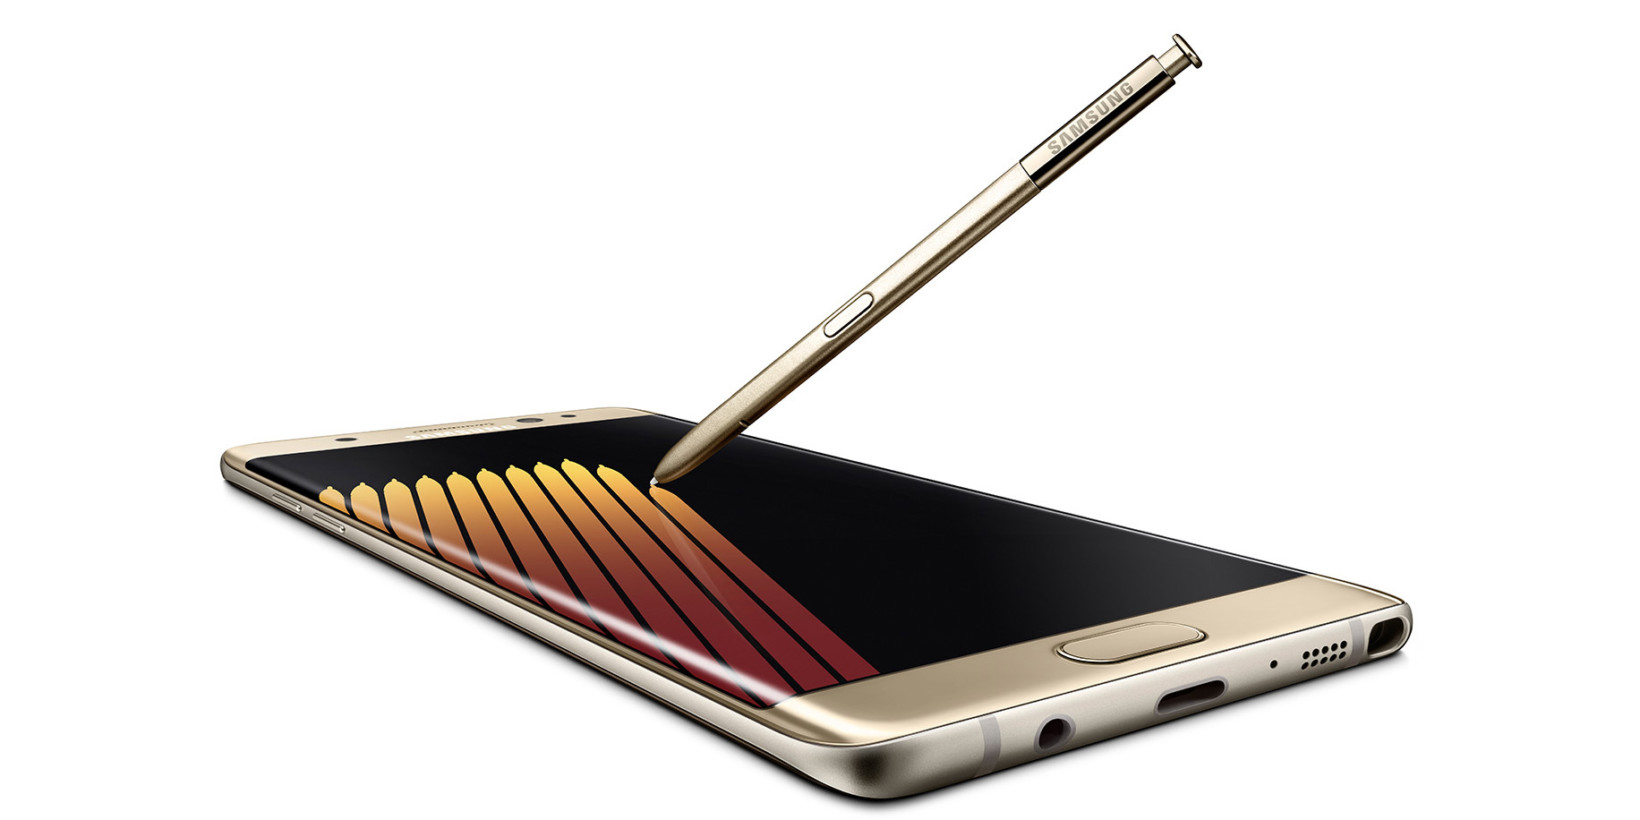 Samsung recalls Galaxy Note 7 because they're catching fire